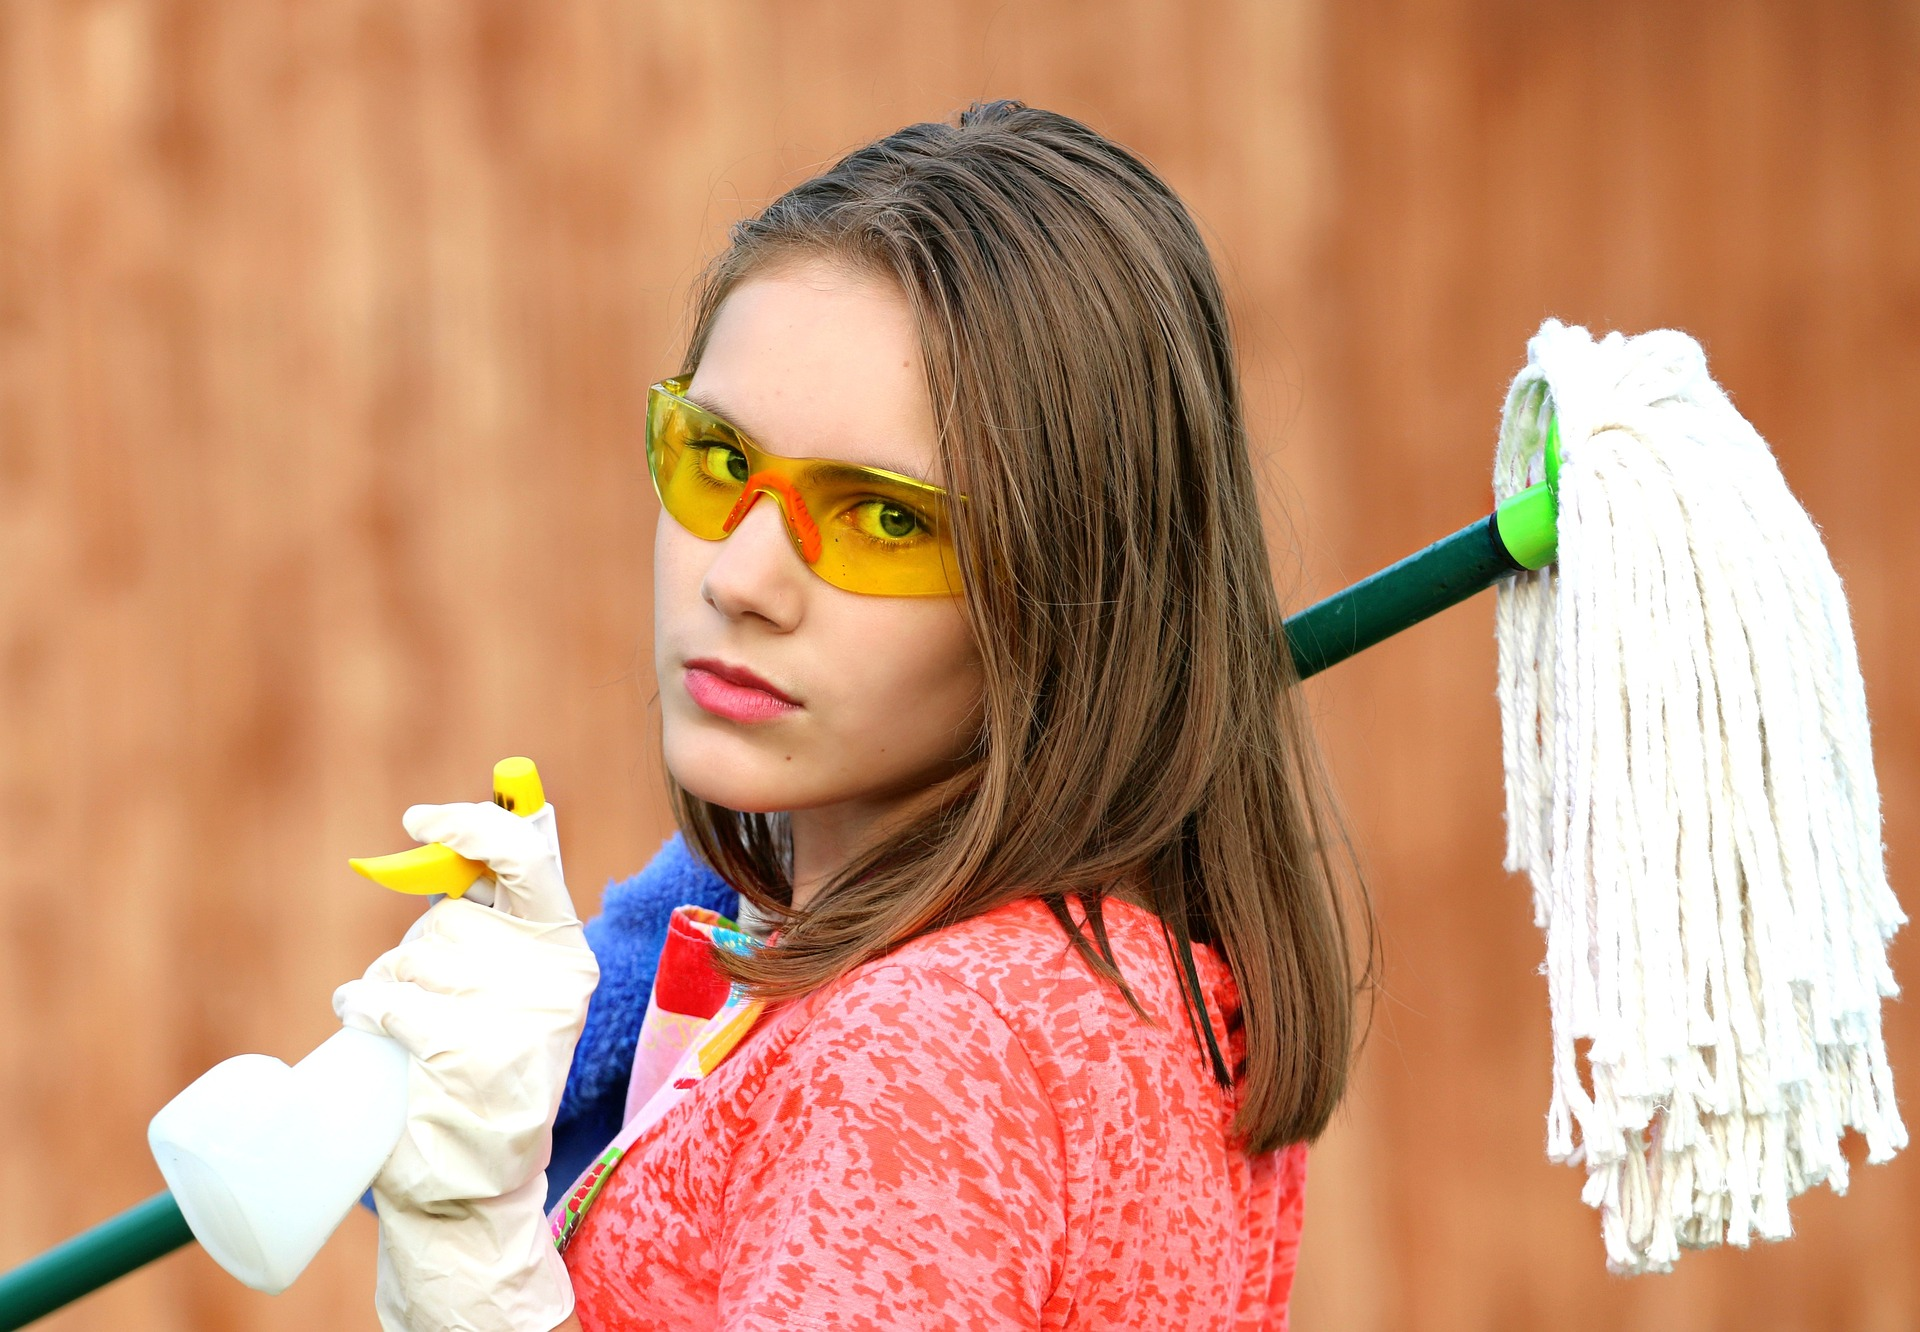 https://pixabay.com/photos/girl-glasses-mop-cleaning-clean-1531575/